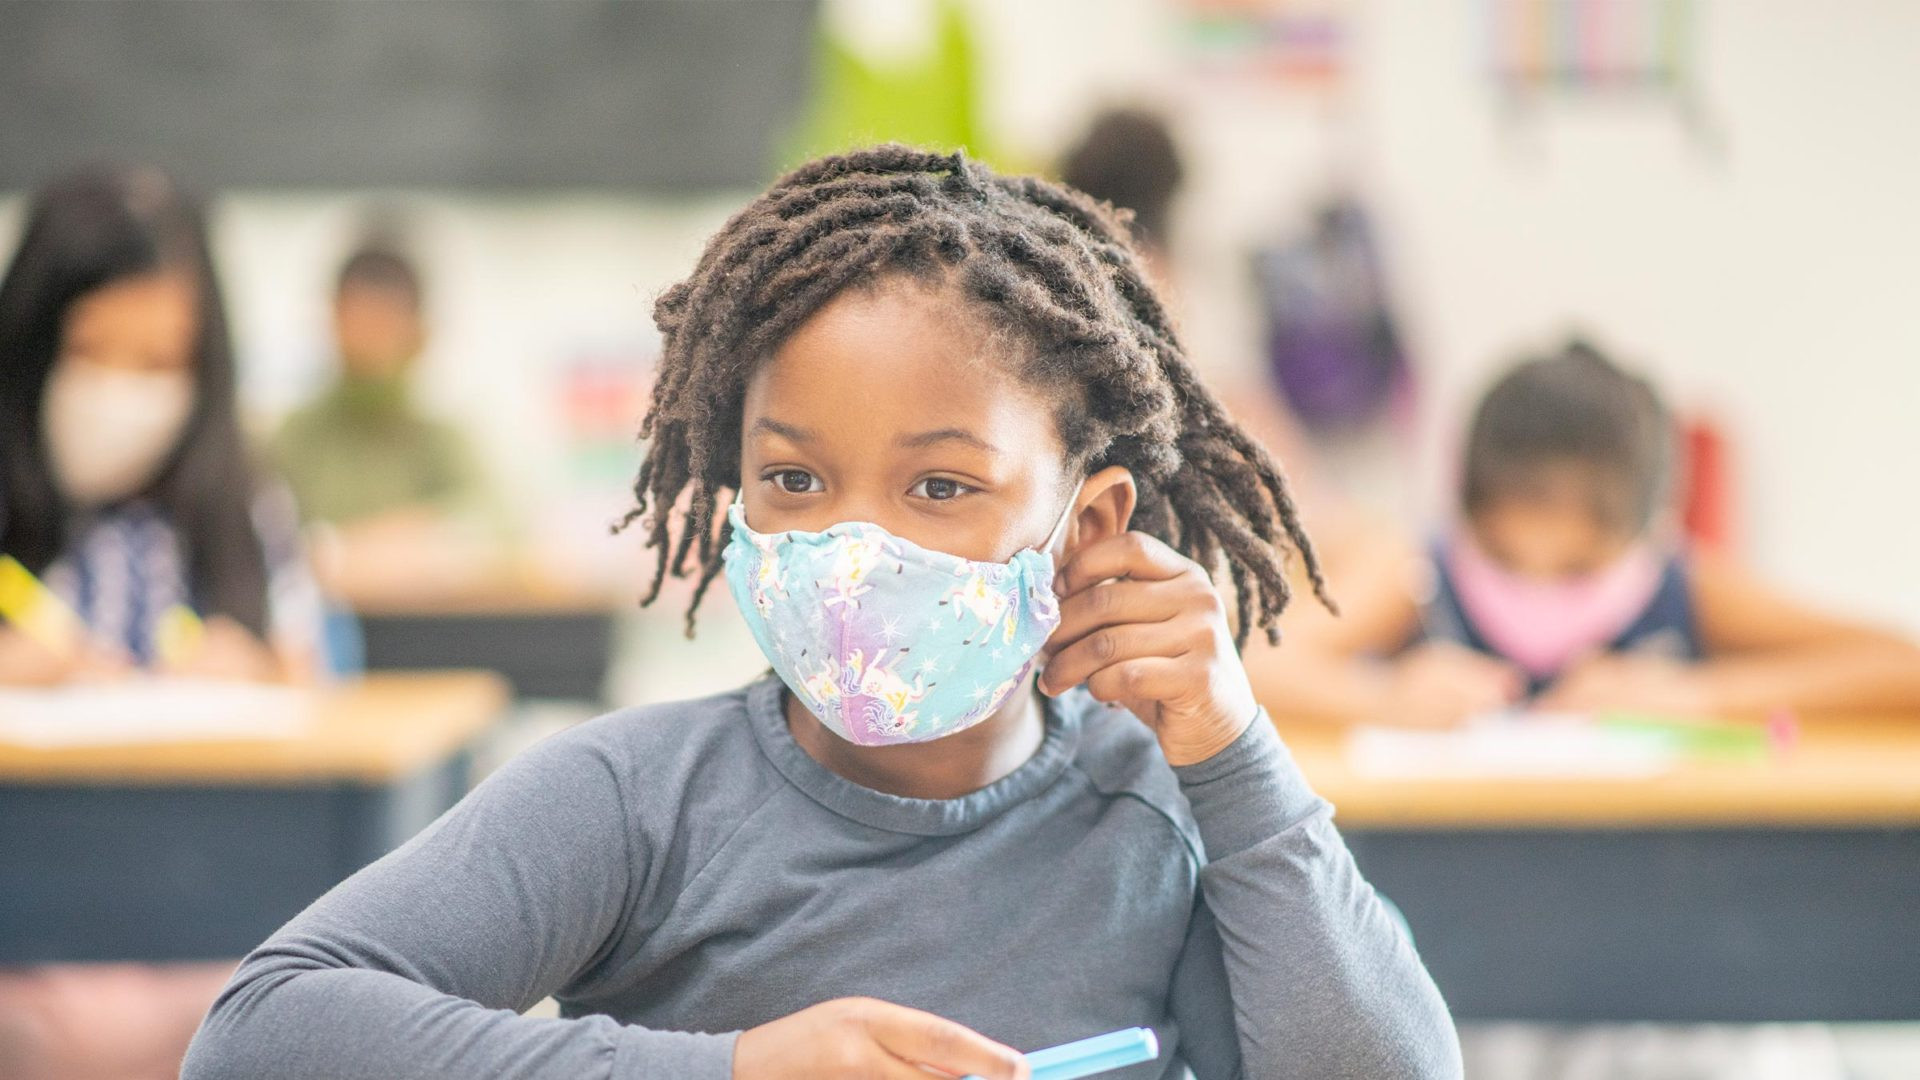 Young girl wearing face mask in school.